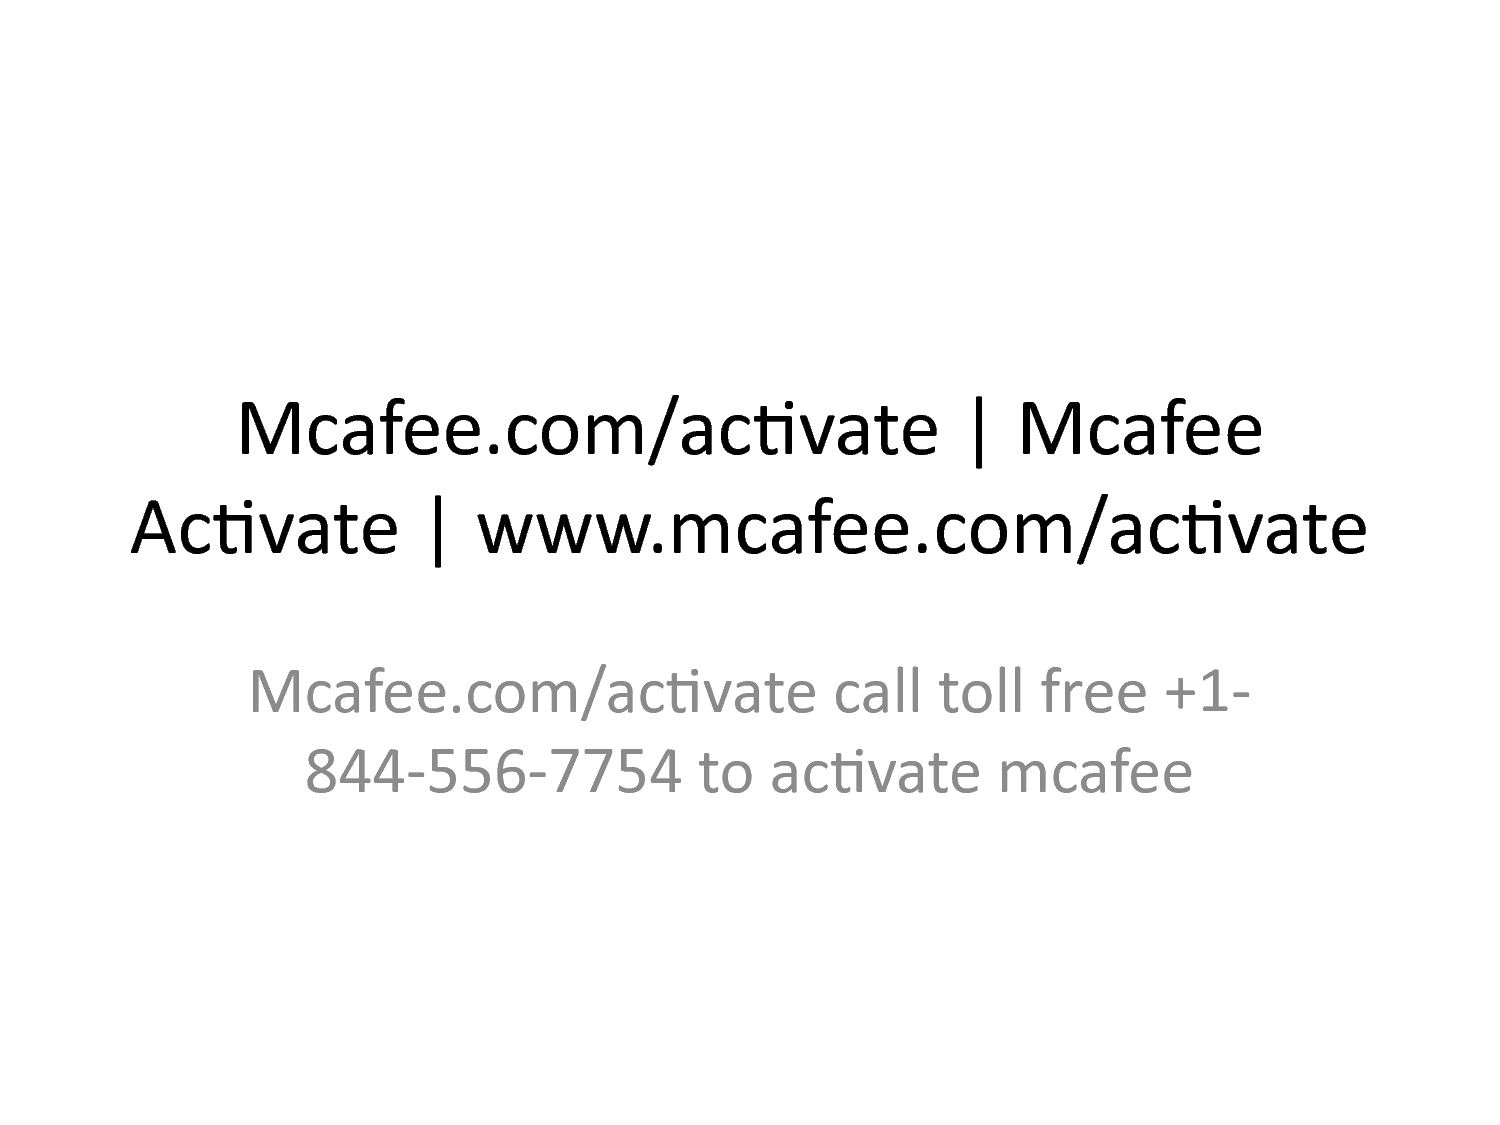 Calaméo - Mcafee com/activate | Mcafee Activate | www mcafee